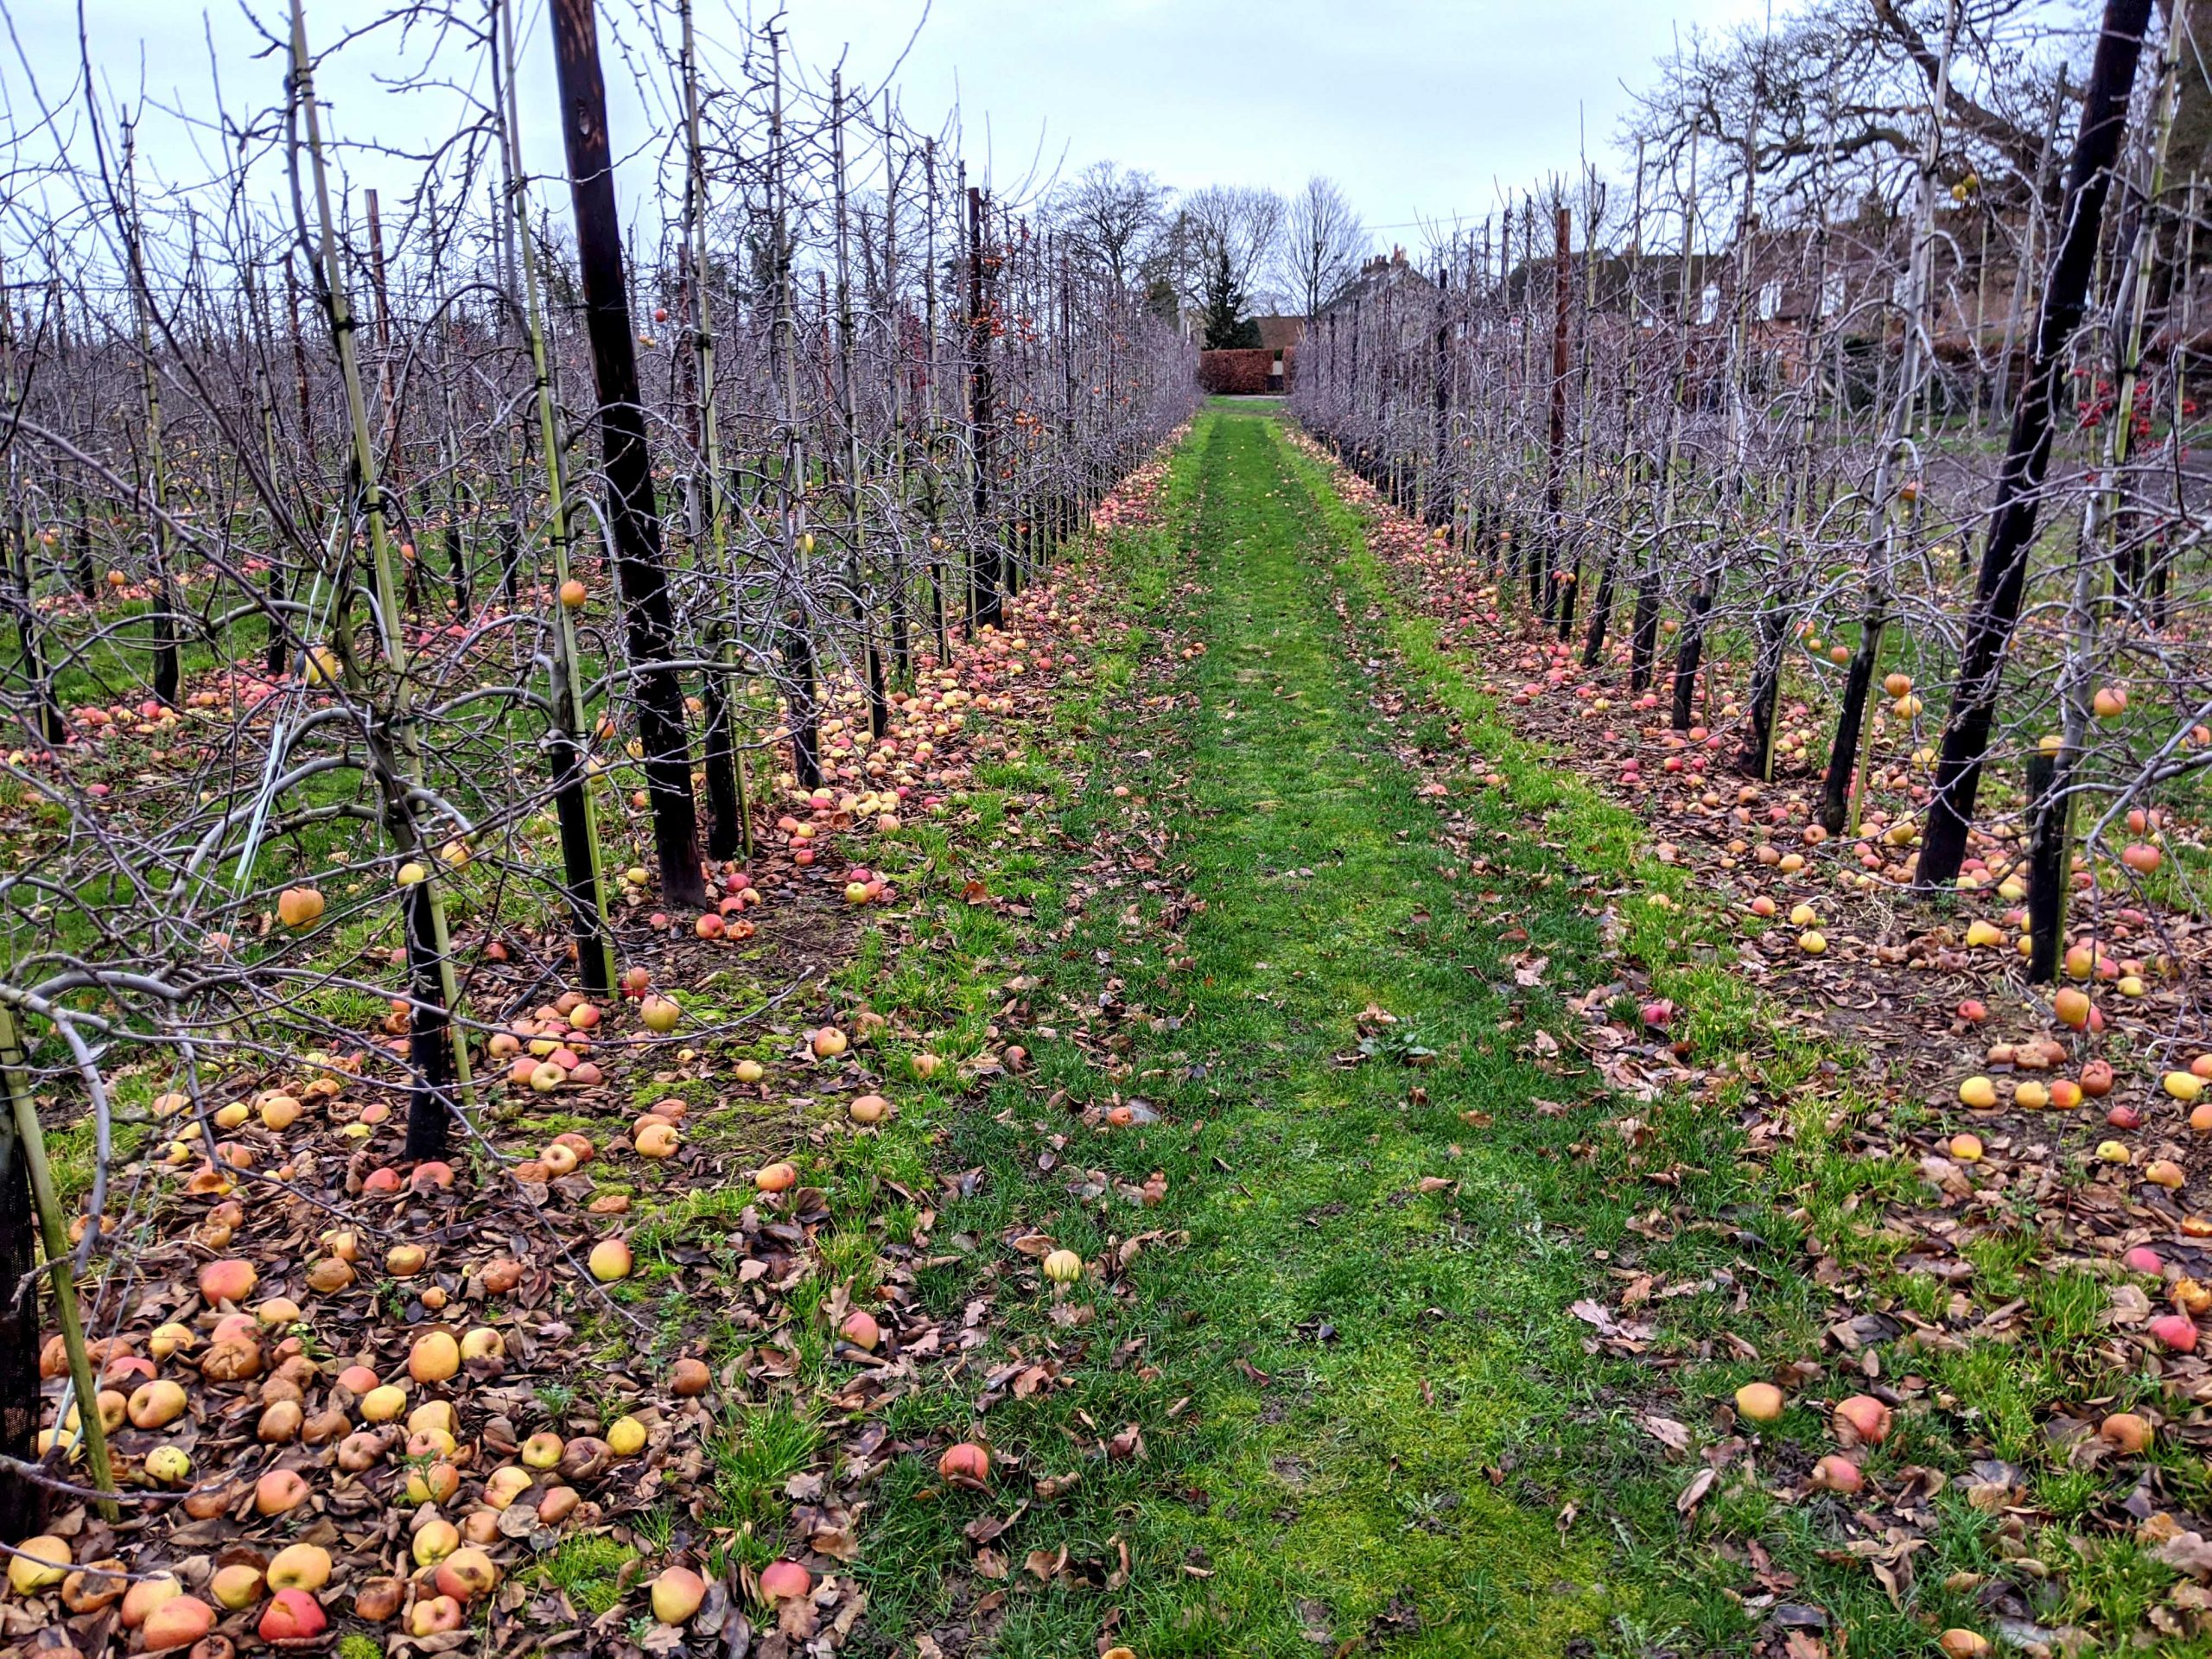 Food Waste in Apple Orchards